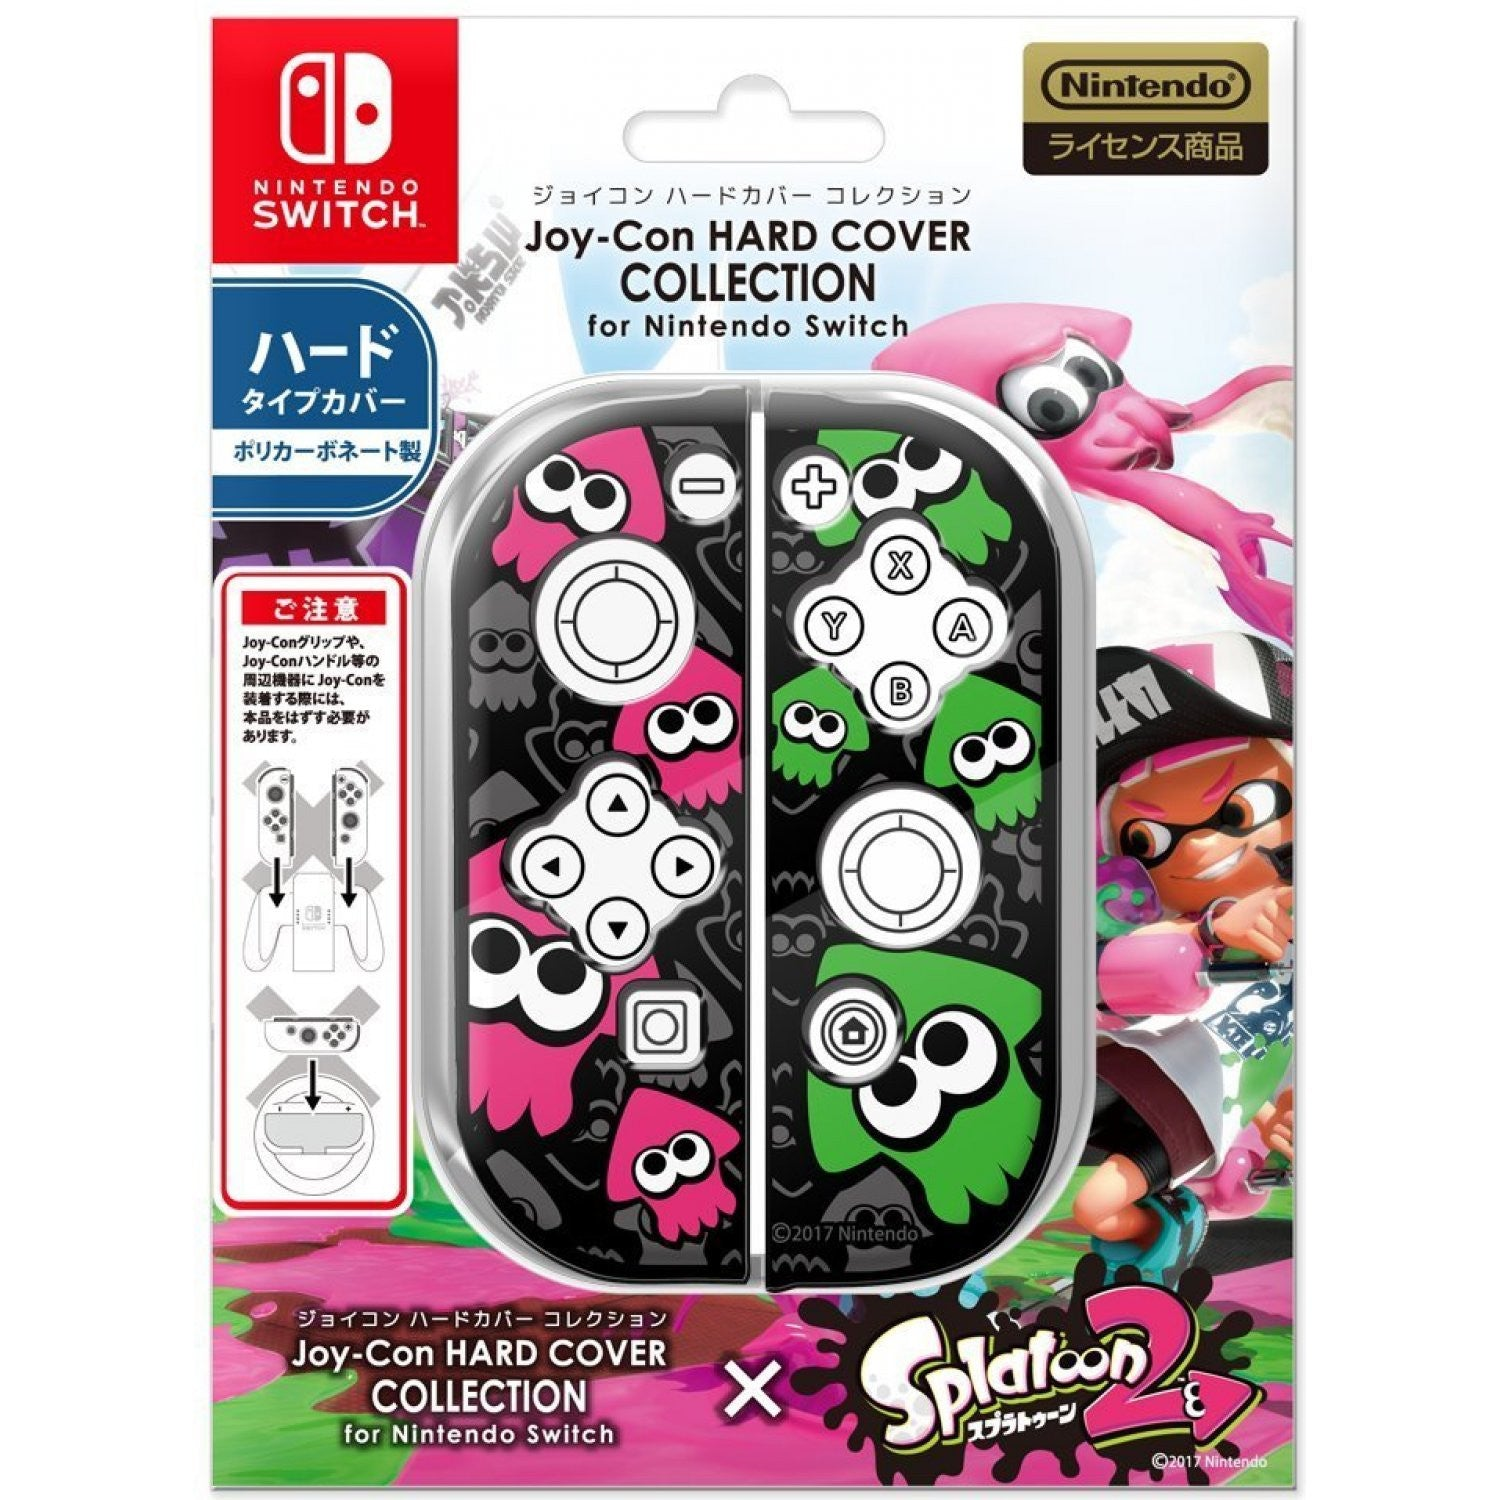 Pre Order Project Cars 2 Page 7 Hori Casing Mika Ps Vita Slim Nintendo Switch Joy Con Hard Cover Splatoon Type B